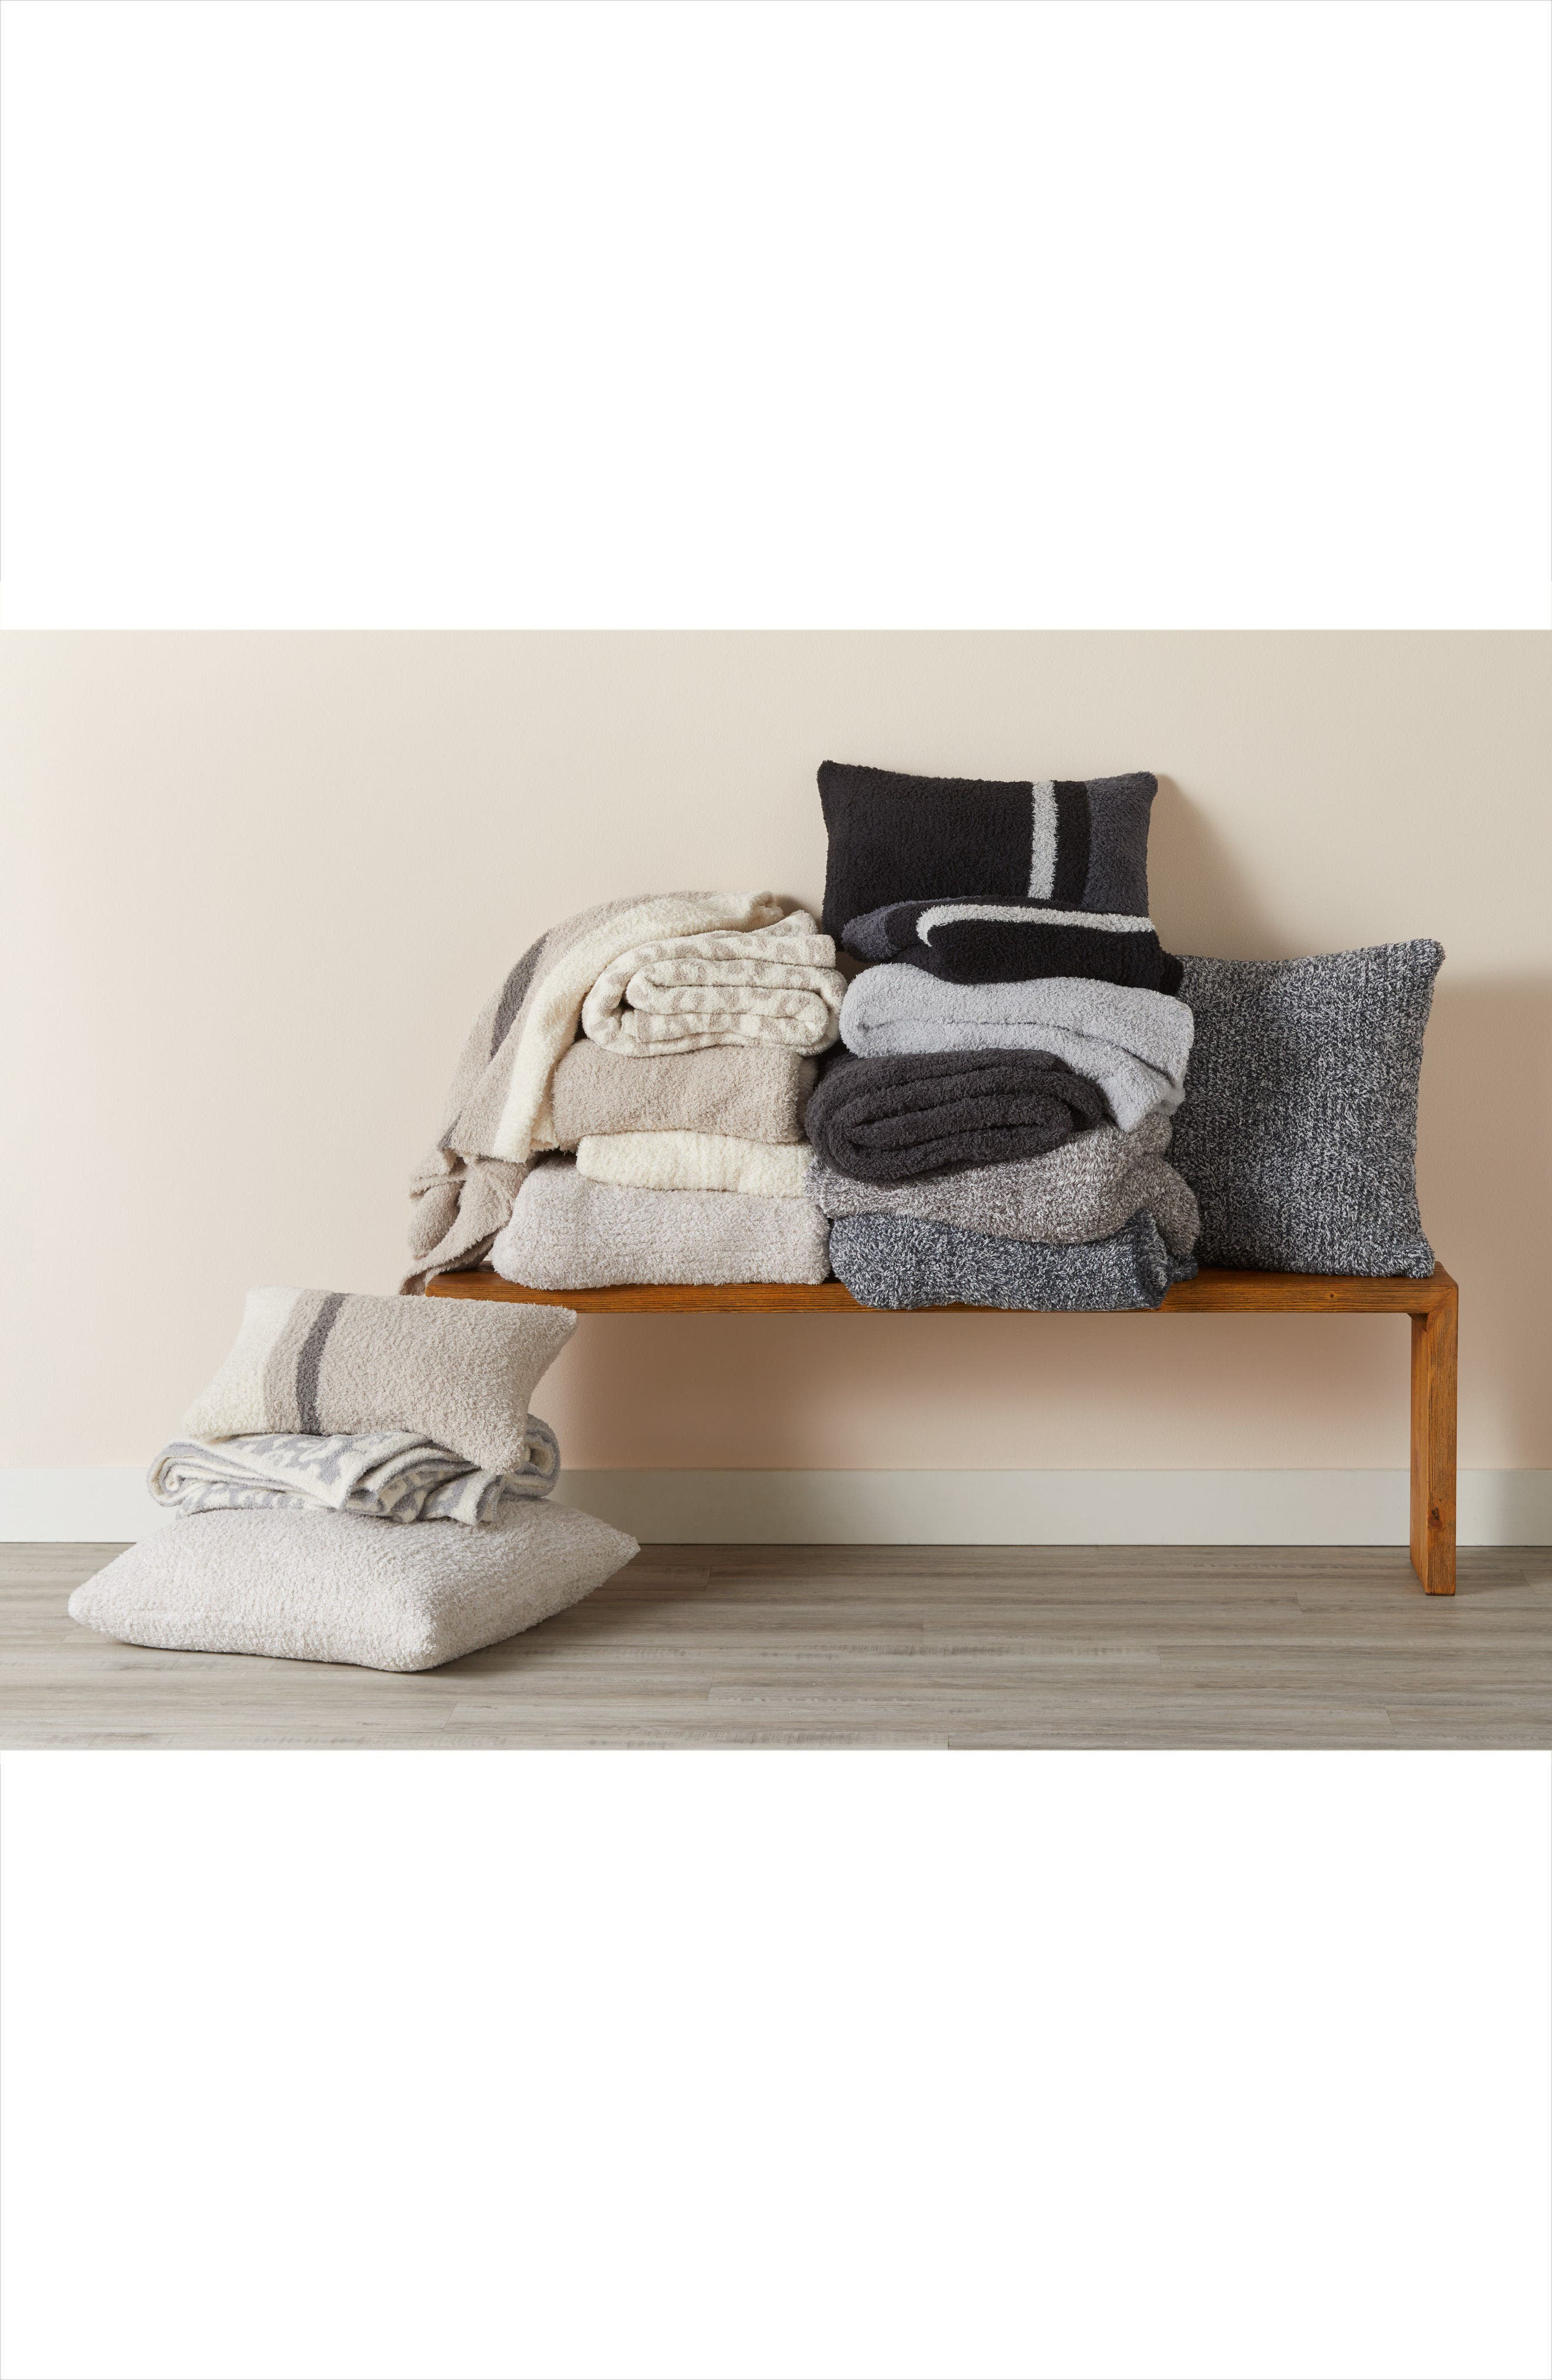 Cozychic<sup>®</sup> Heathered Throw Blanket,                             Alternate thumbnail 3, color,